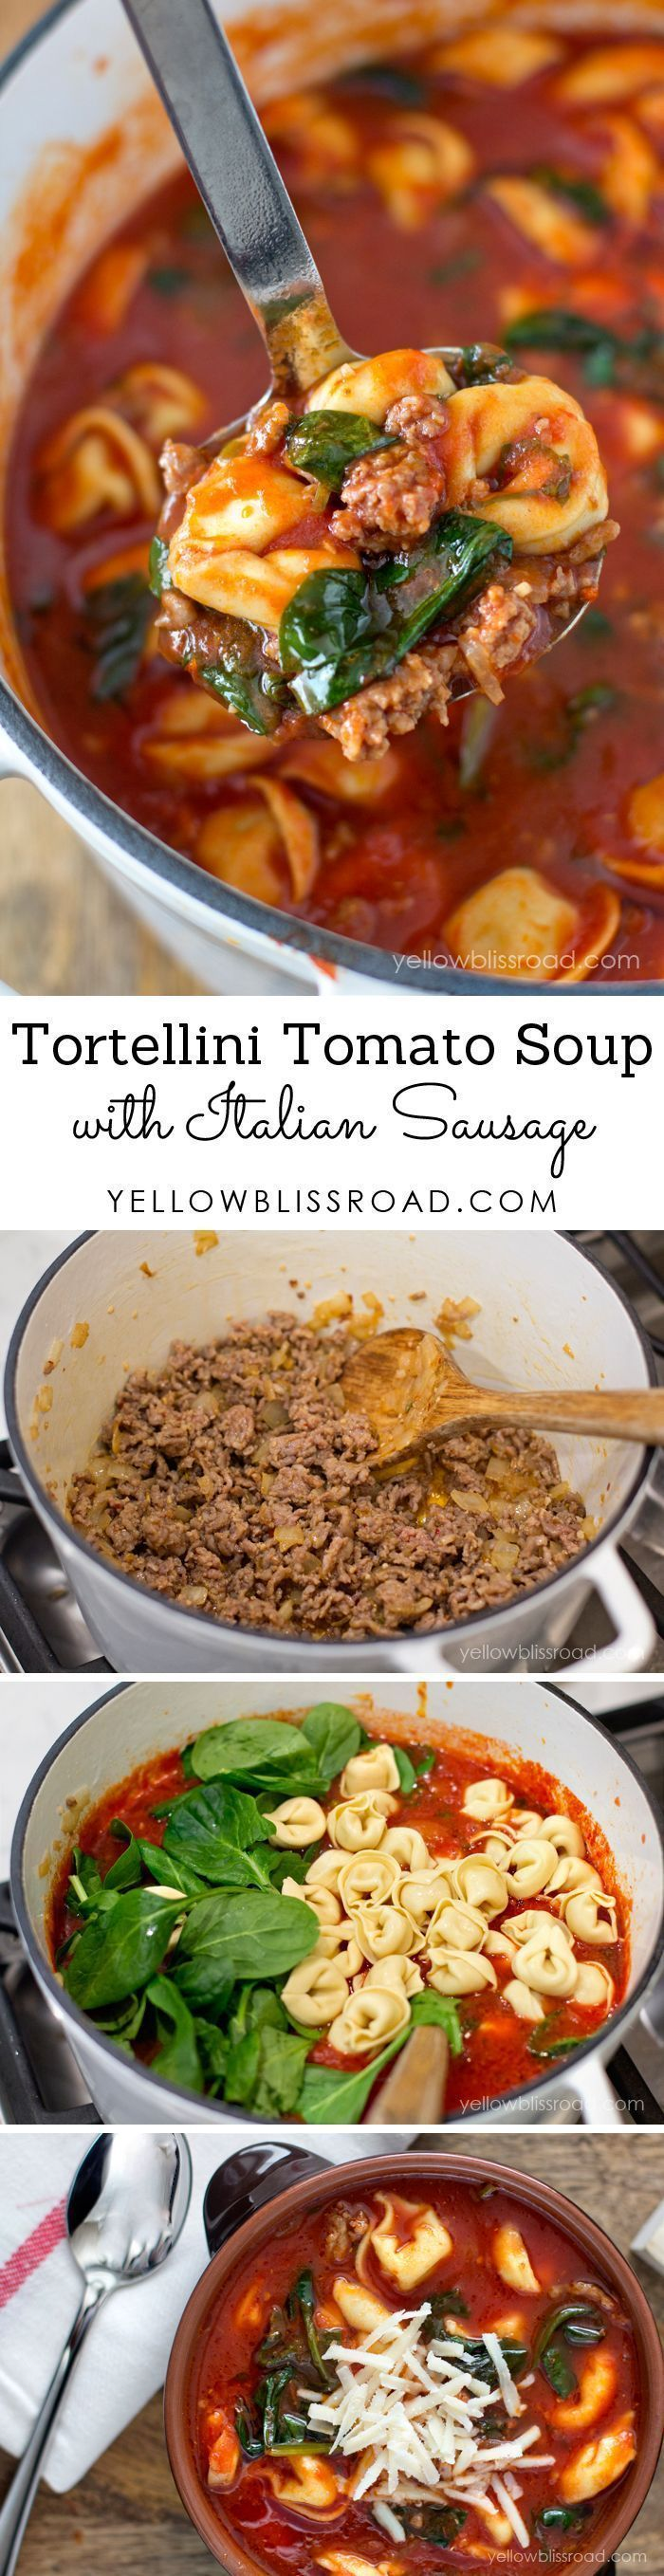 Tortellini Tomato and Spinach Soup with Italian Sausage recipe. How good does this look? (Soup Recipes Tortellini)